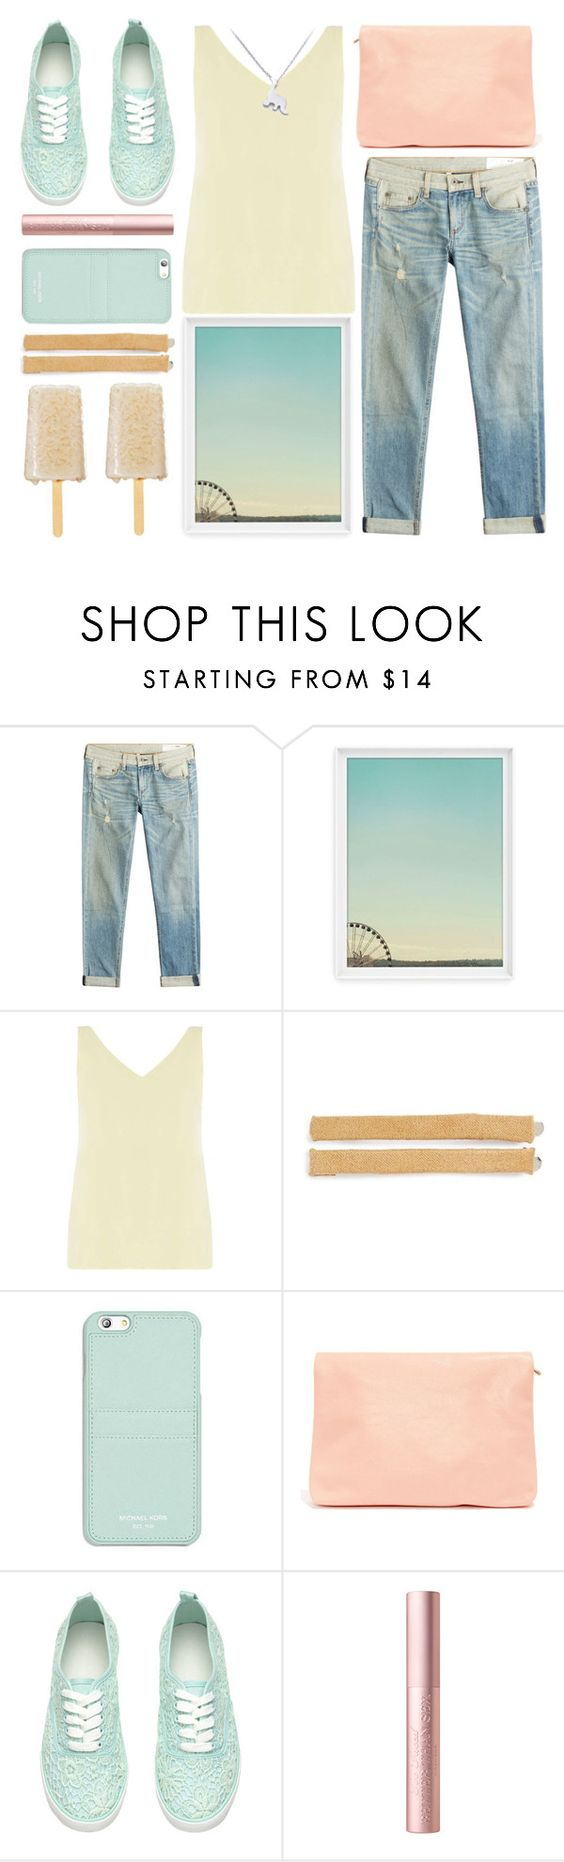 """yummy popsicle"" by foundlostme ❤ liked on Polyvore featuring rag & bone, Dorothy Perkins, Tasha, Michael Kors, statefair and summerdate"